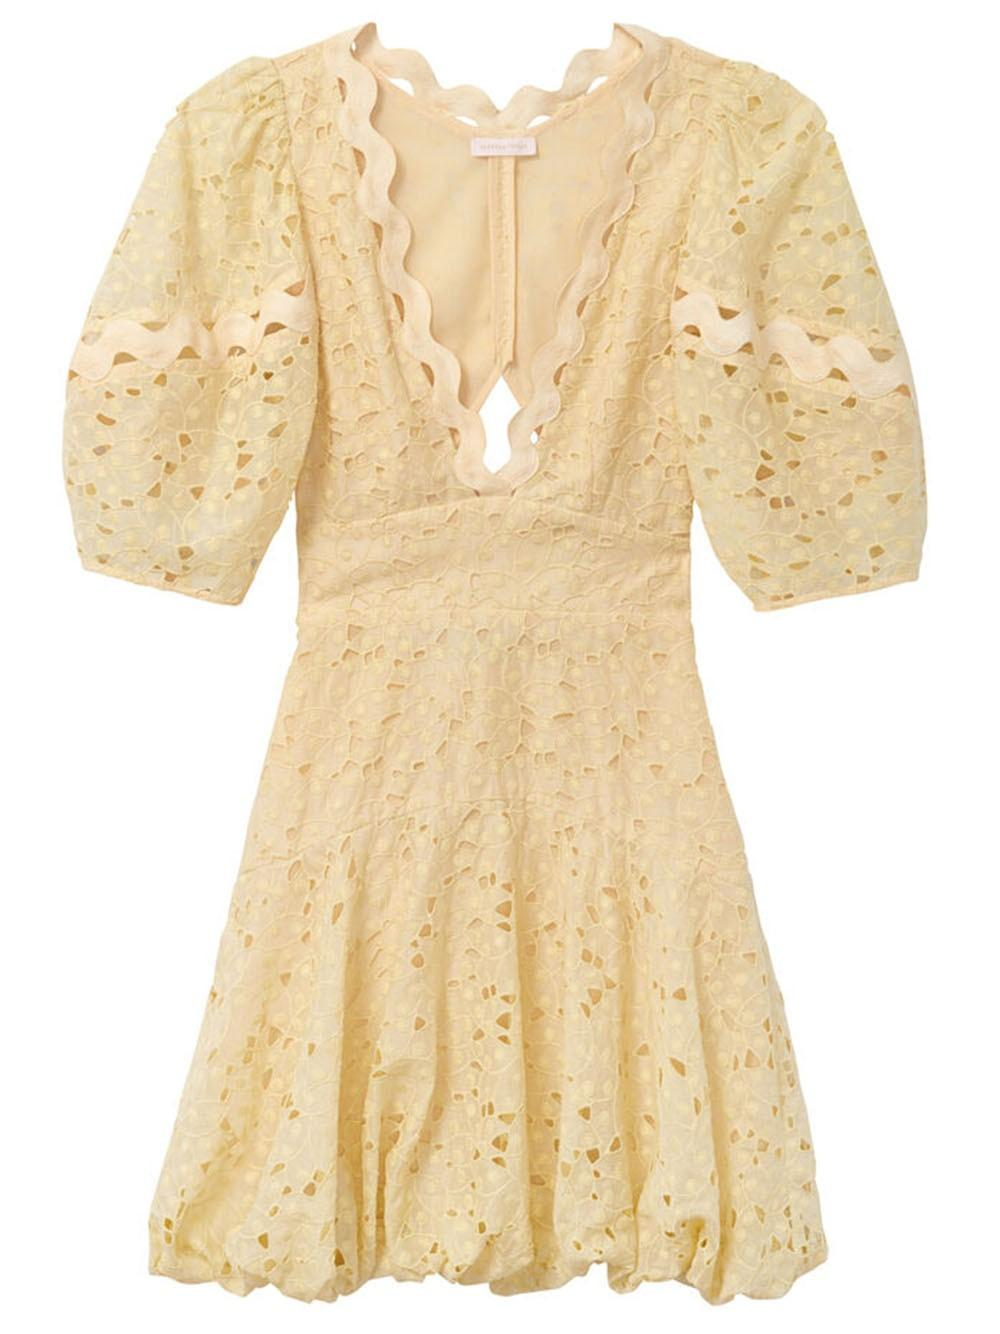 Audrey Eyelet Dress